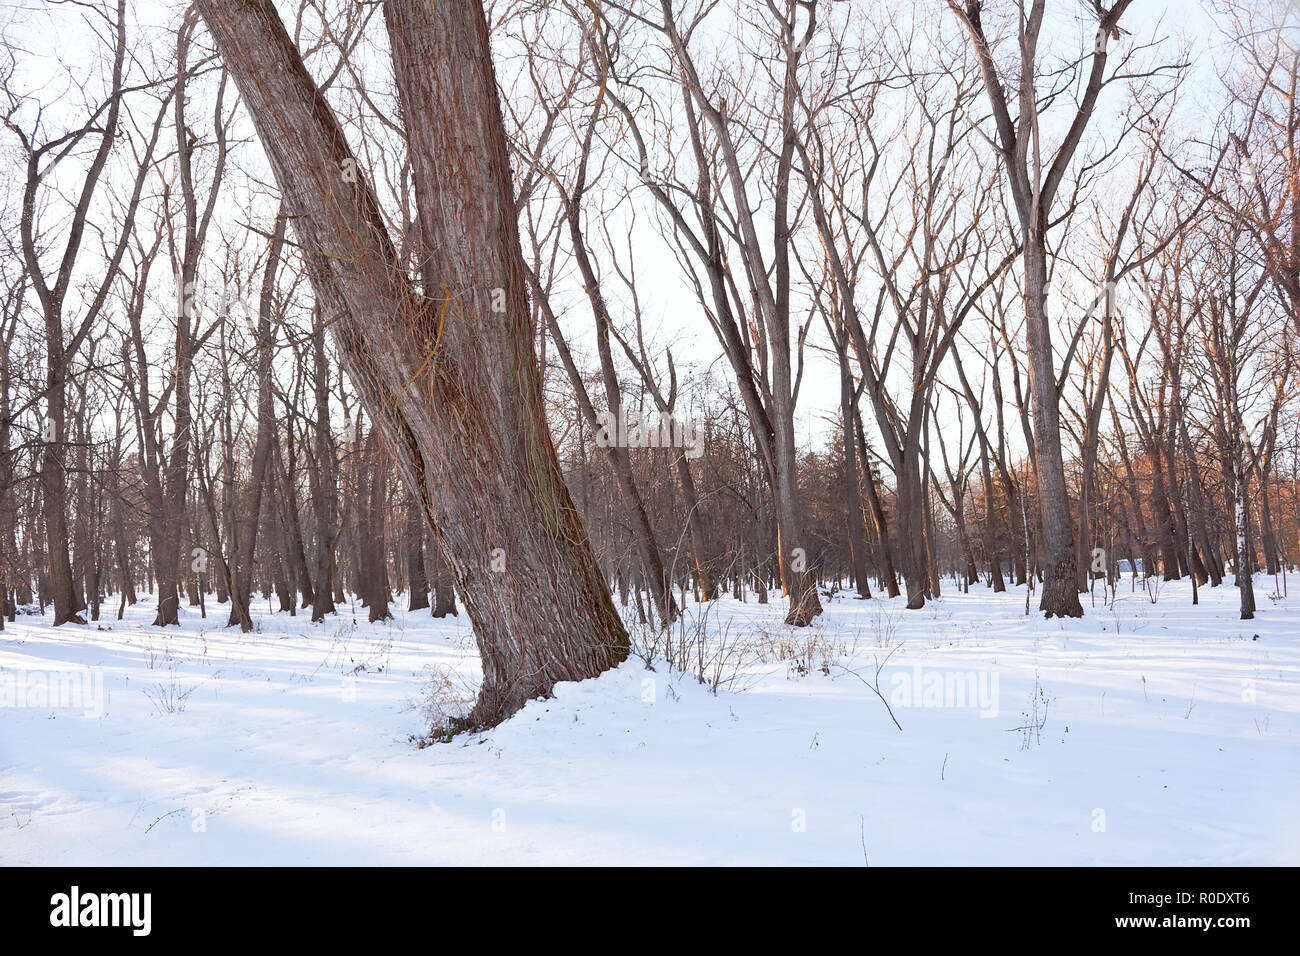 Trees in a snowy park. In the foreground a trunk of an old tree with dried lianas on it - Stock Image